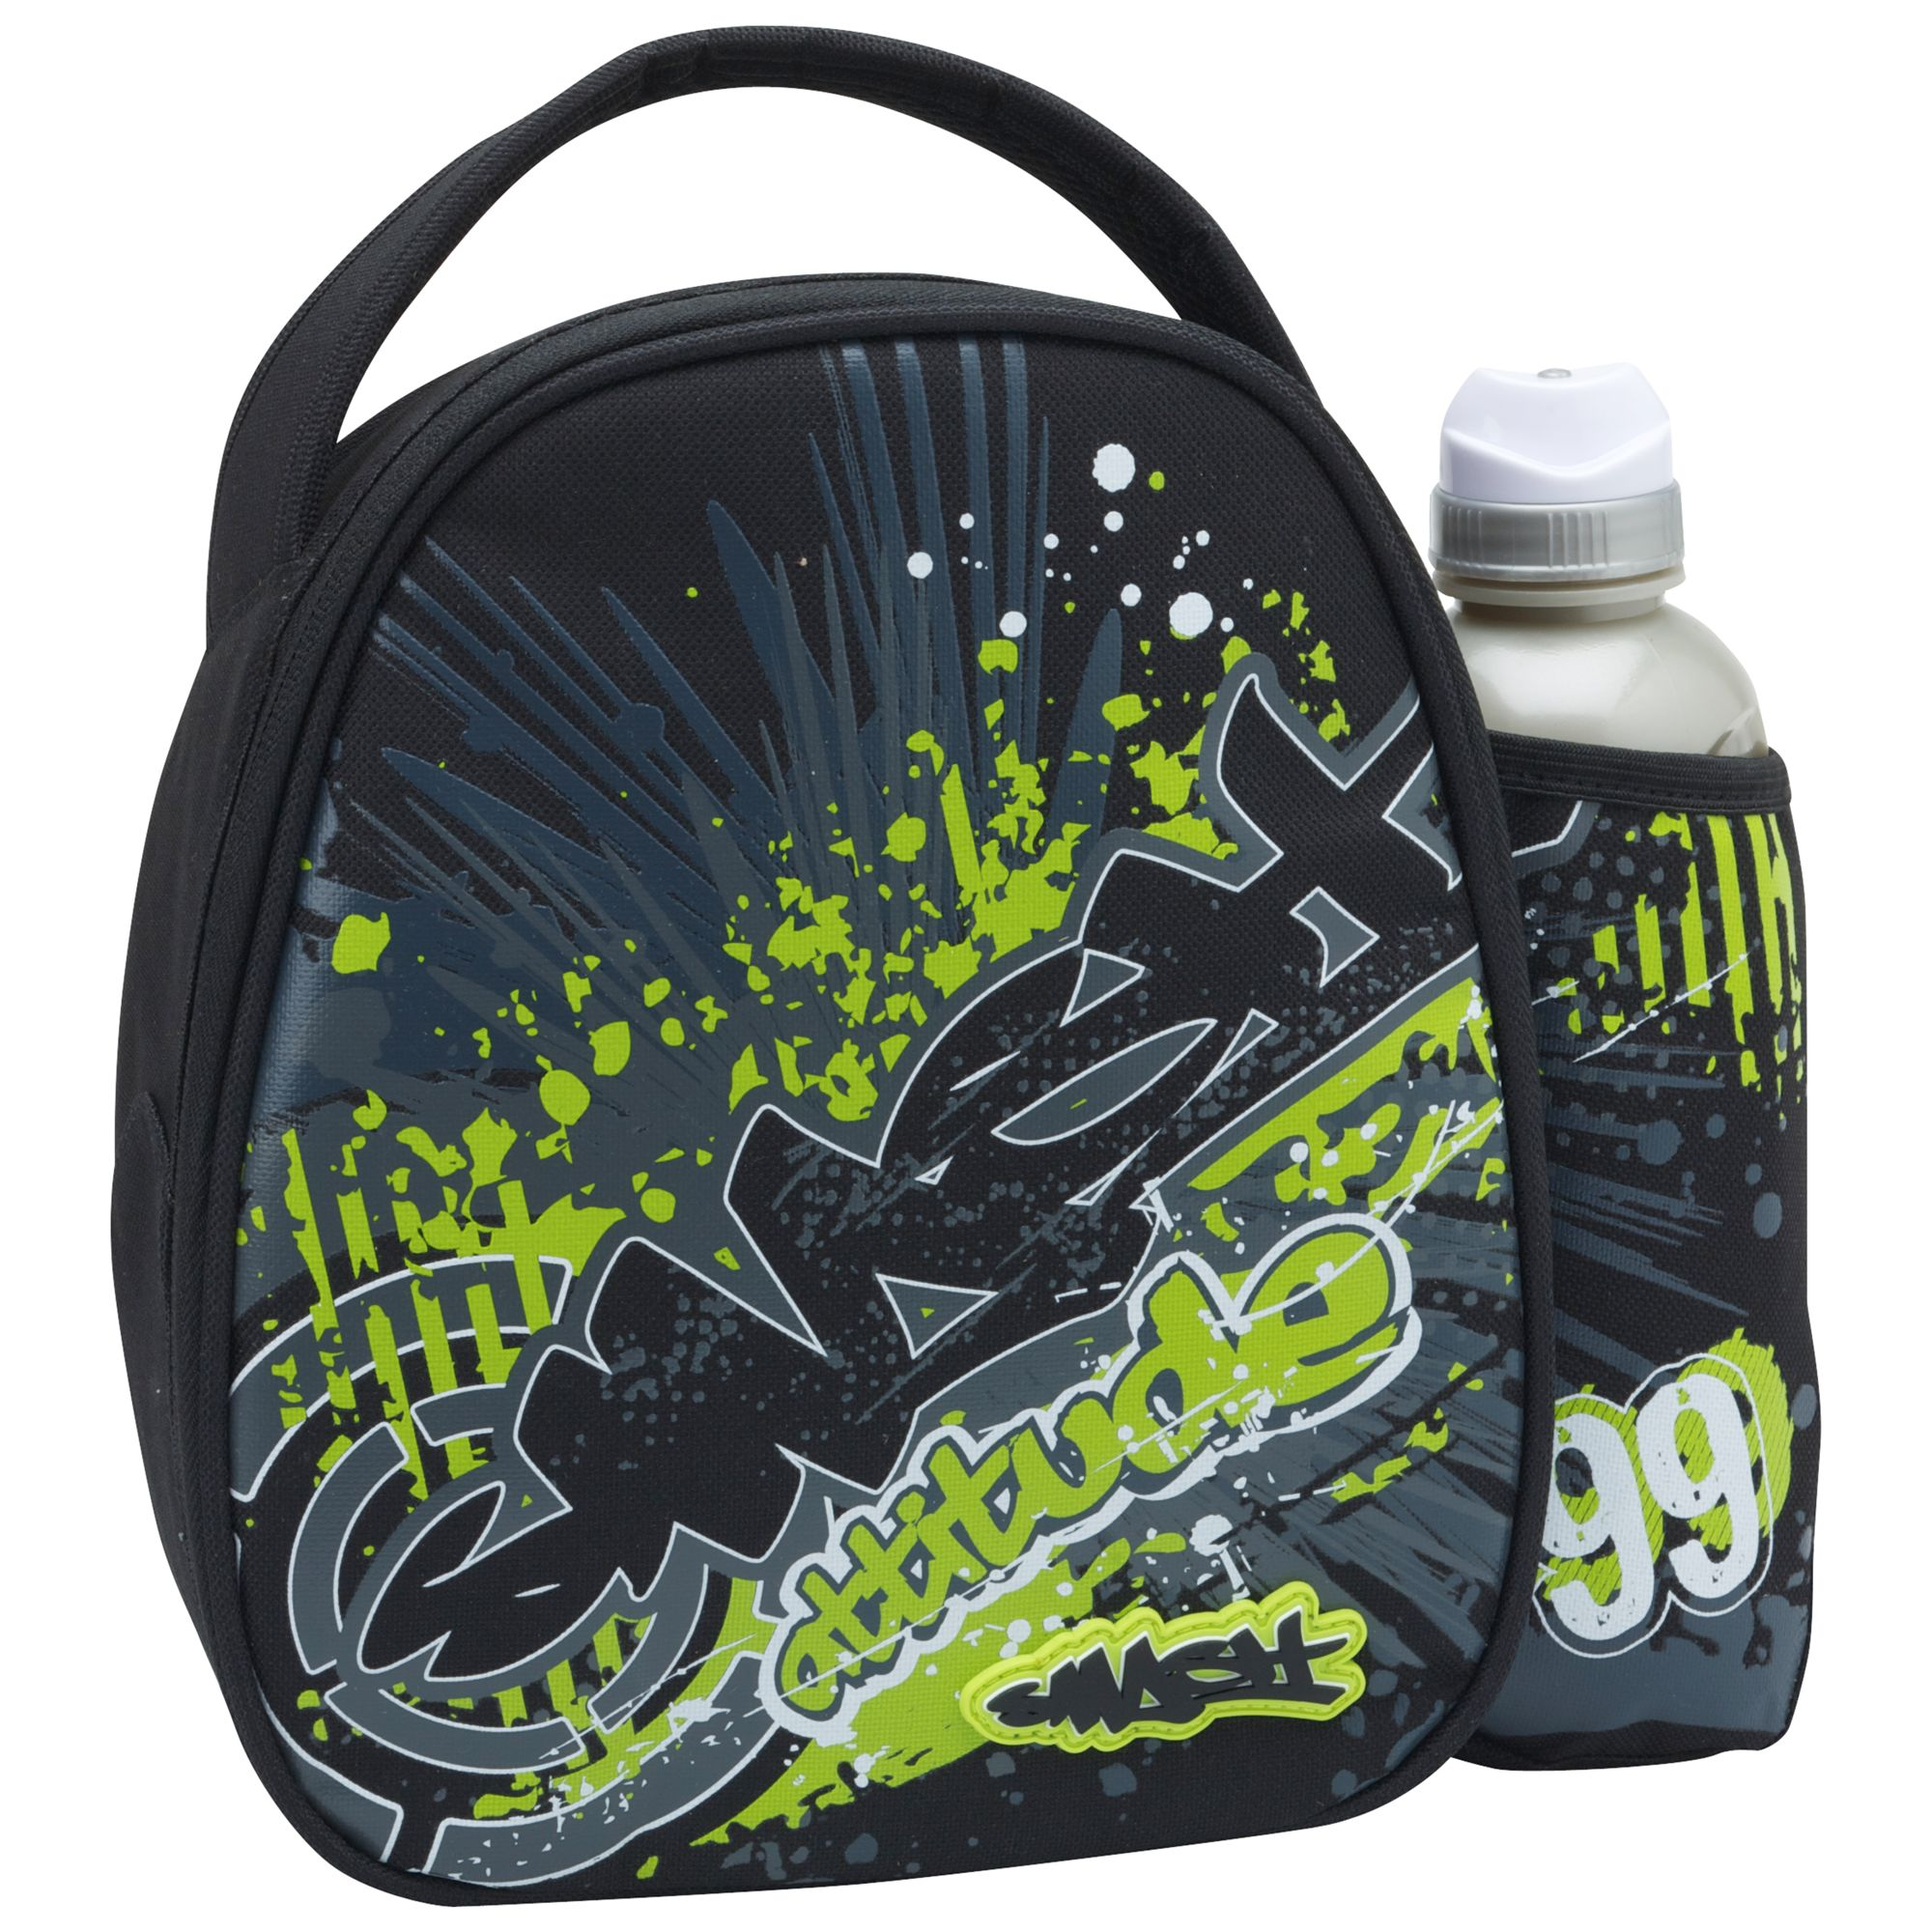 Smash Teleport Lunch Bag and Water Bottle